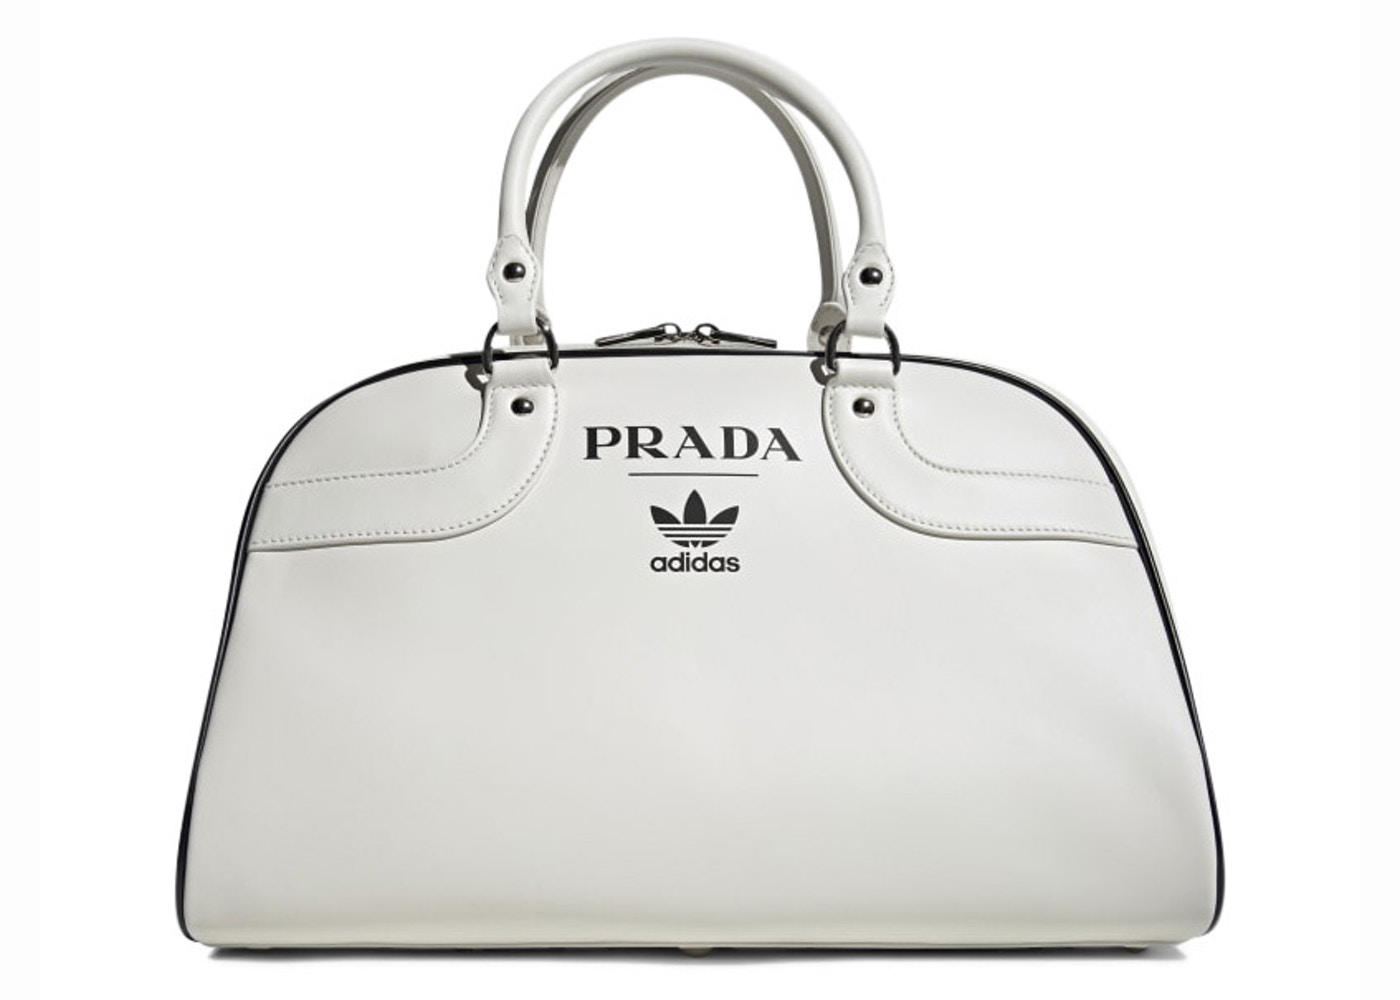 x Adidas Bowling Bag (Without Shoes) White by Prada, available on stockx.com for $1500 Bella Hadid Bags Exact Product